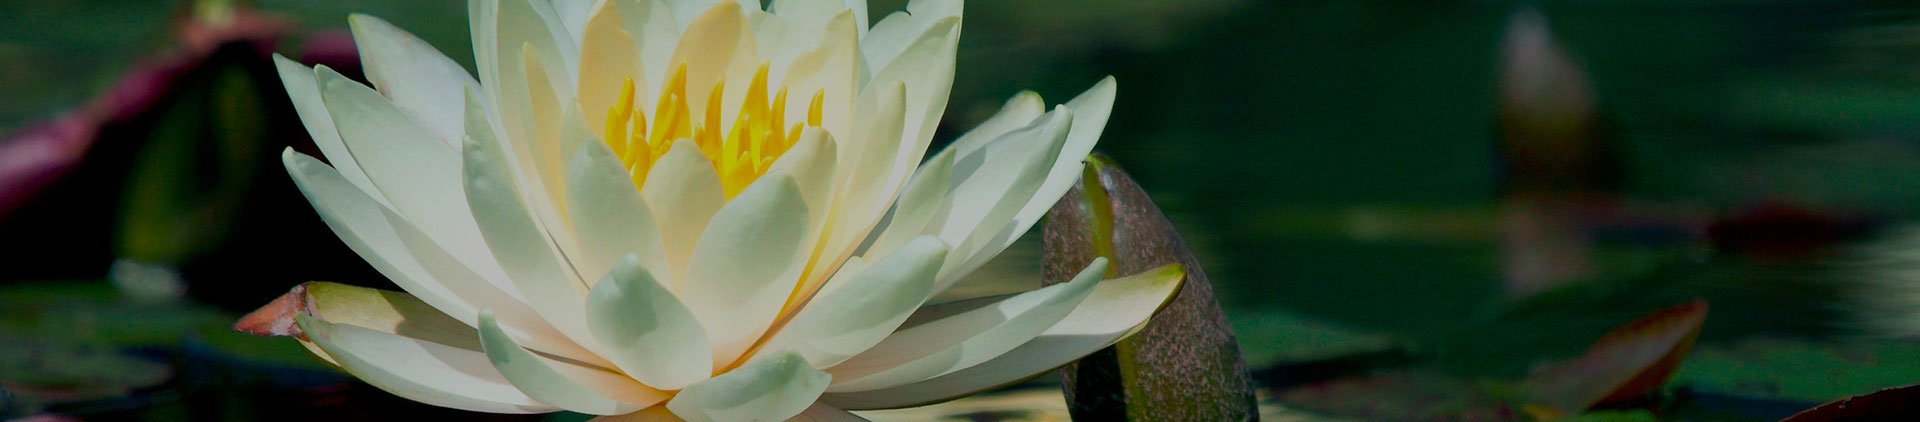 Resources | Grace Funeral & Cremation Services